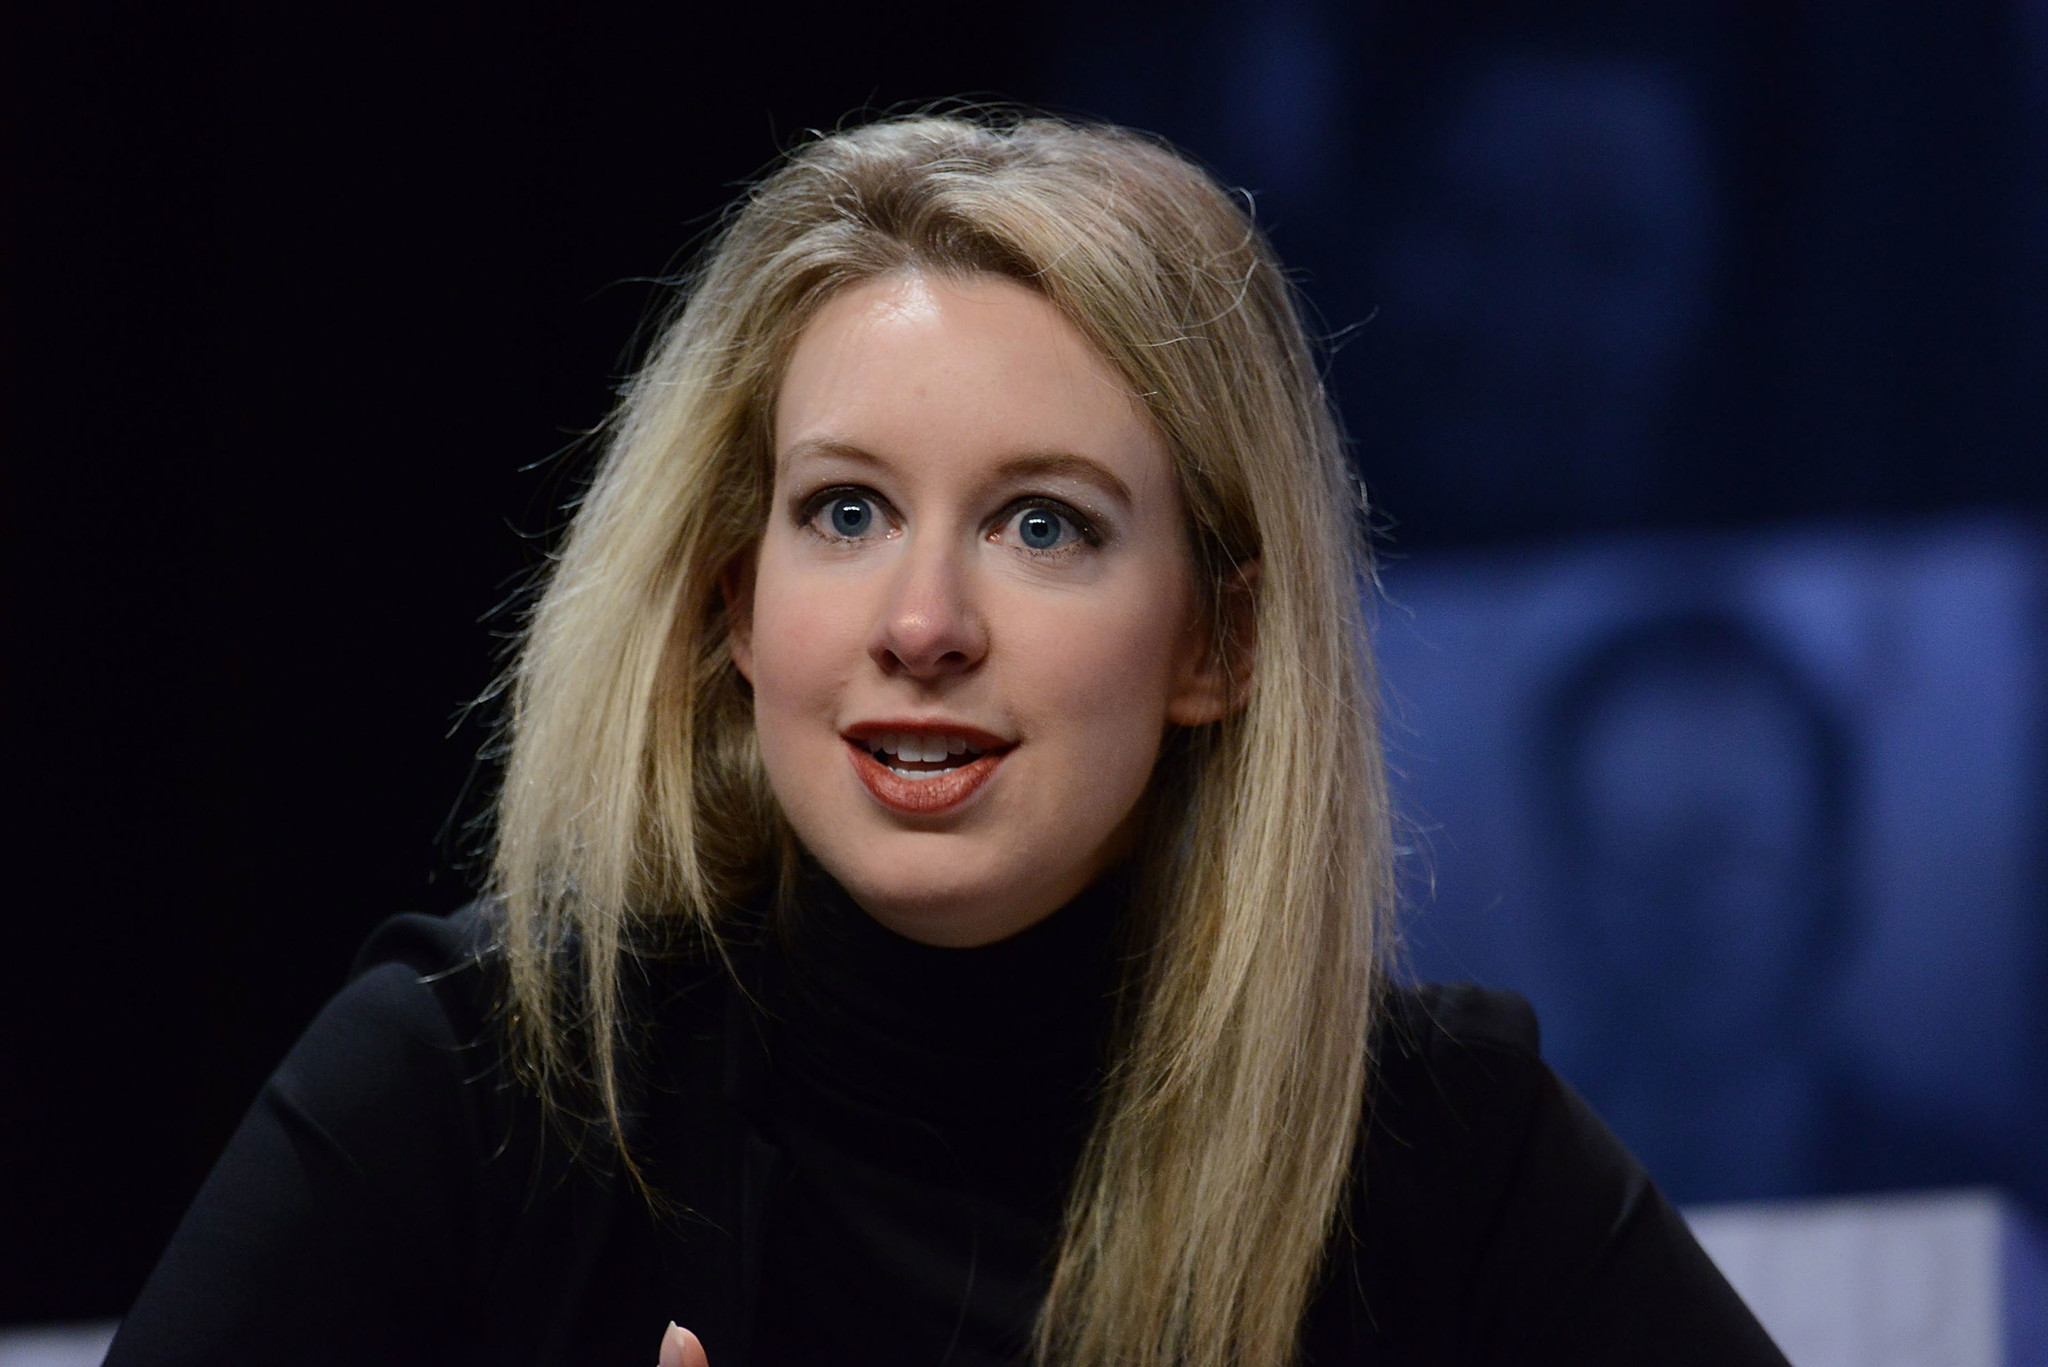 Judge dismisses some charges against Theranos founder Elizabeth Holmes and ex-COO Ramesh Balwani